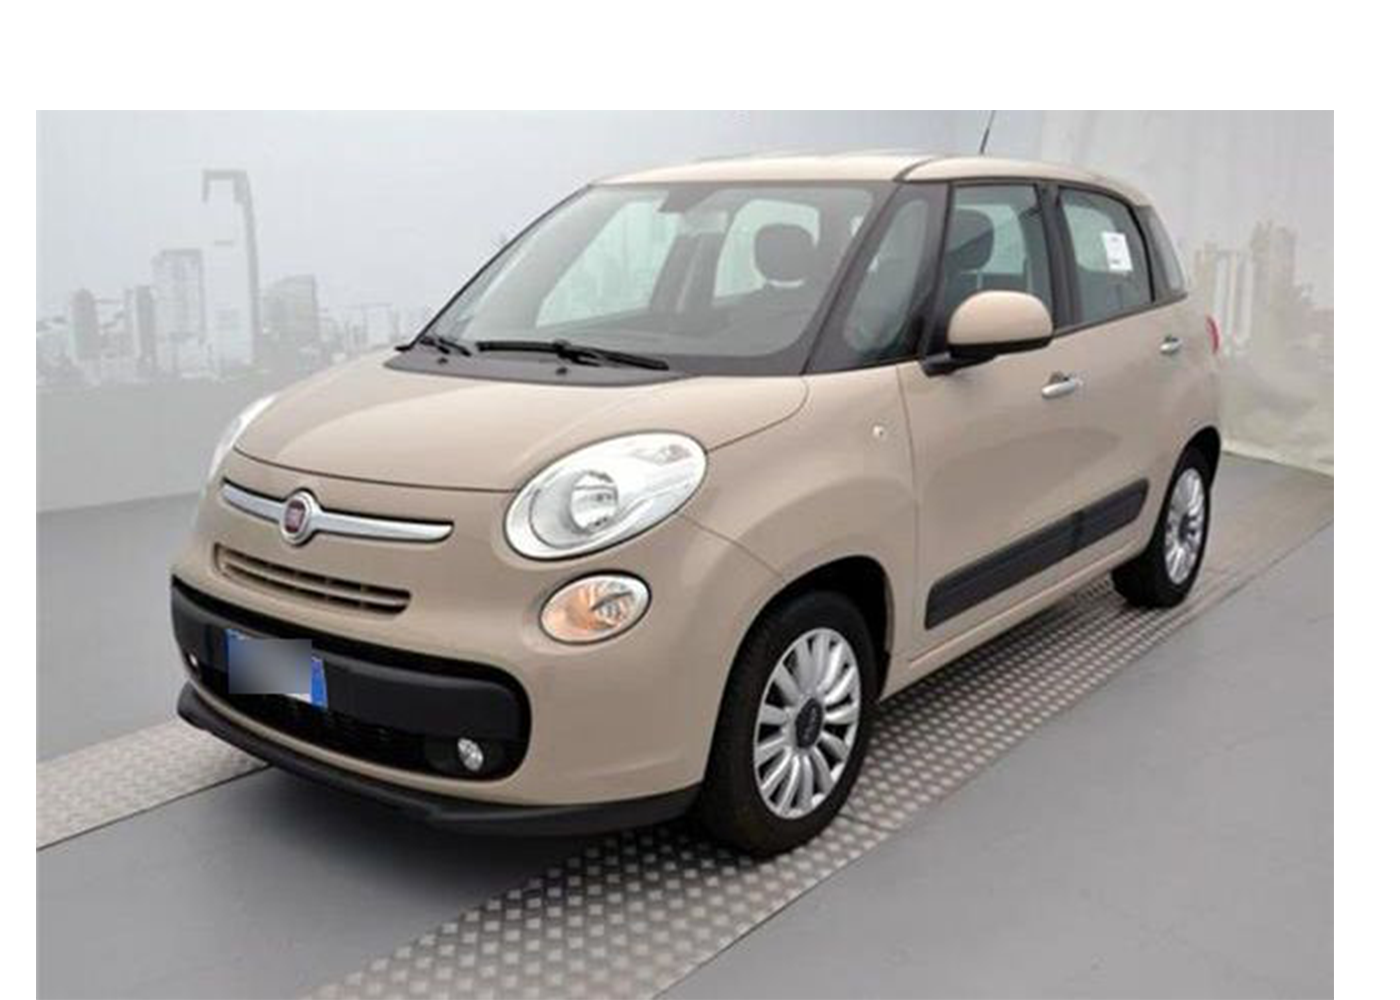 fiat 500l 1 3 multijet 95cv pop star beige cappuccino km0 a soli 15500 su miacar 9ae14. Black Bedroom Furniture Sets. Home Design Ideas